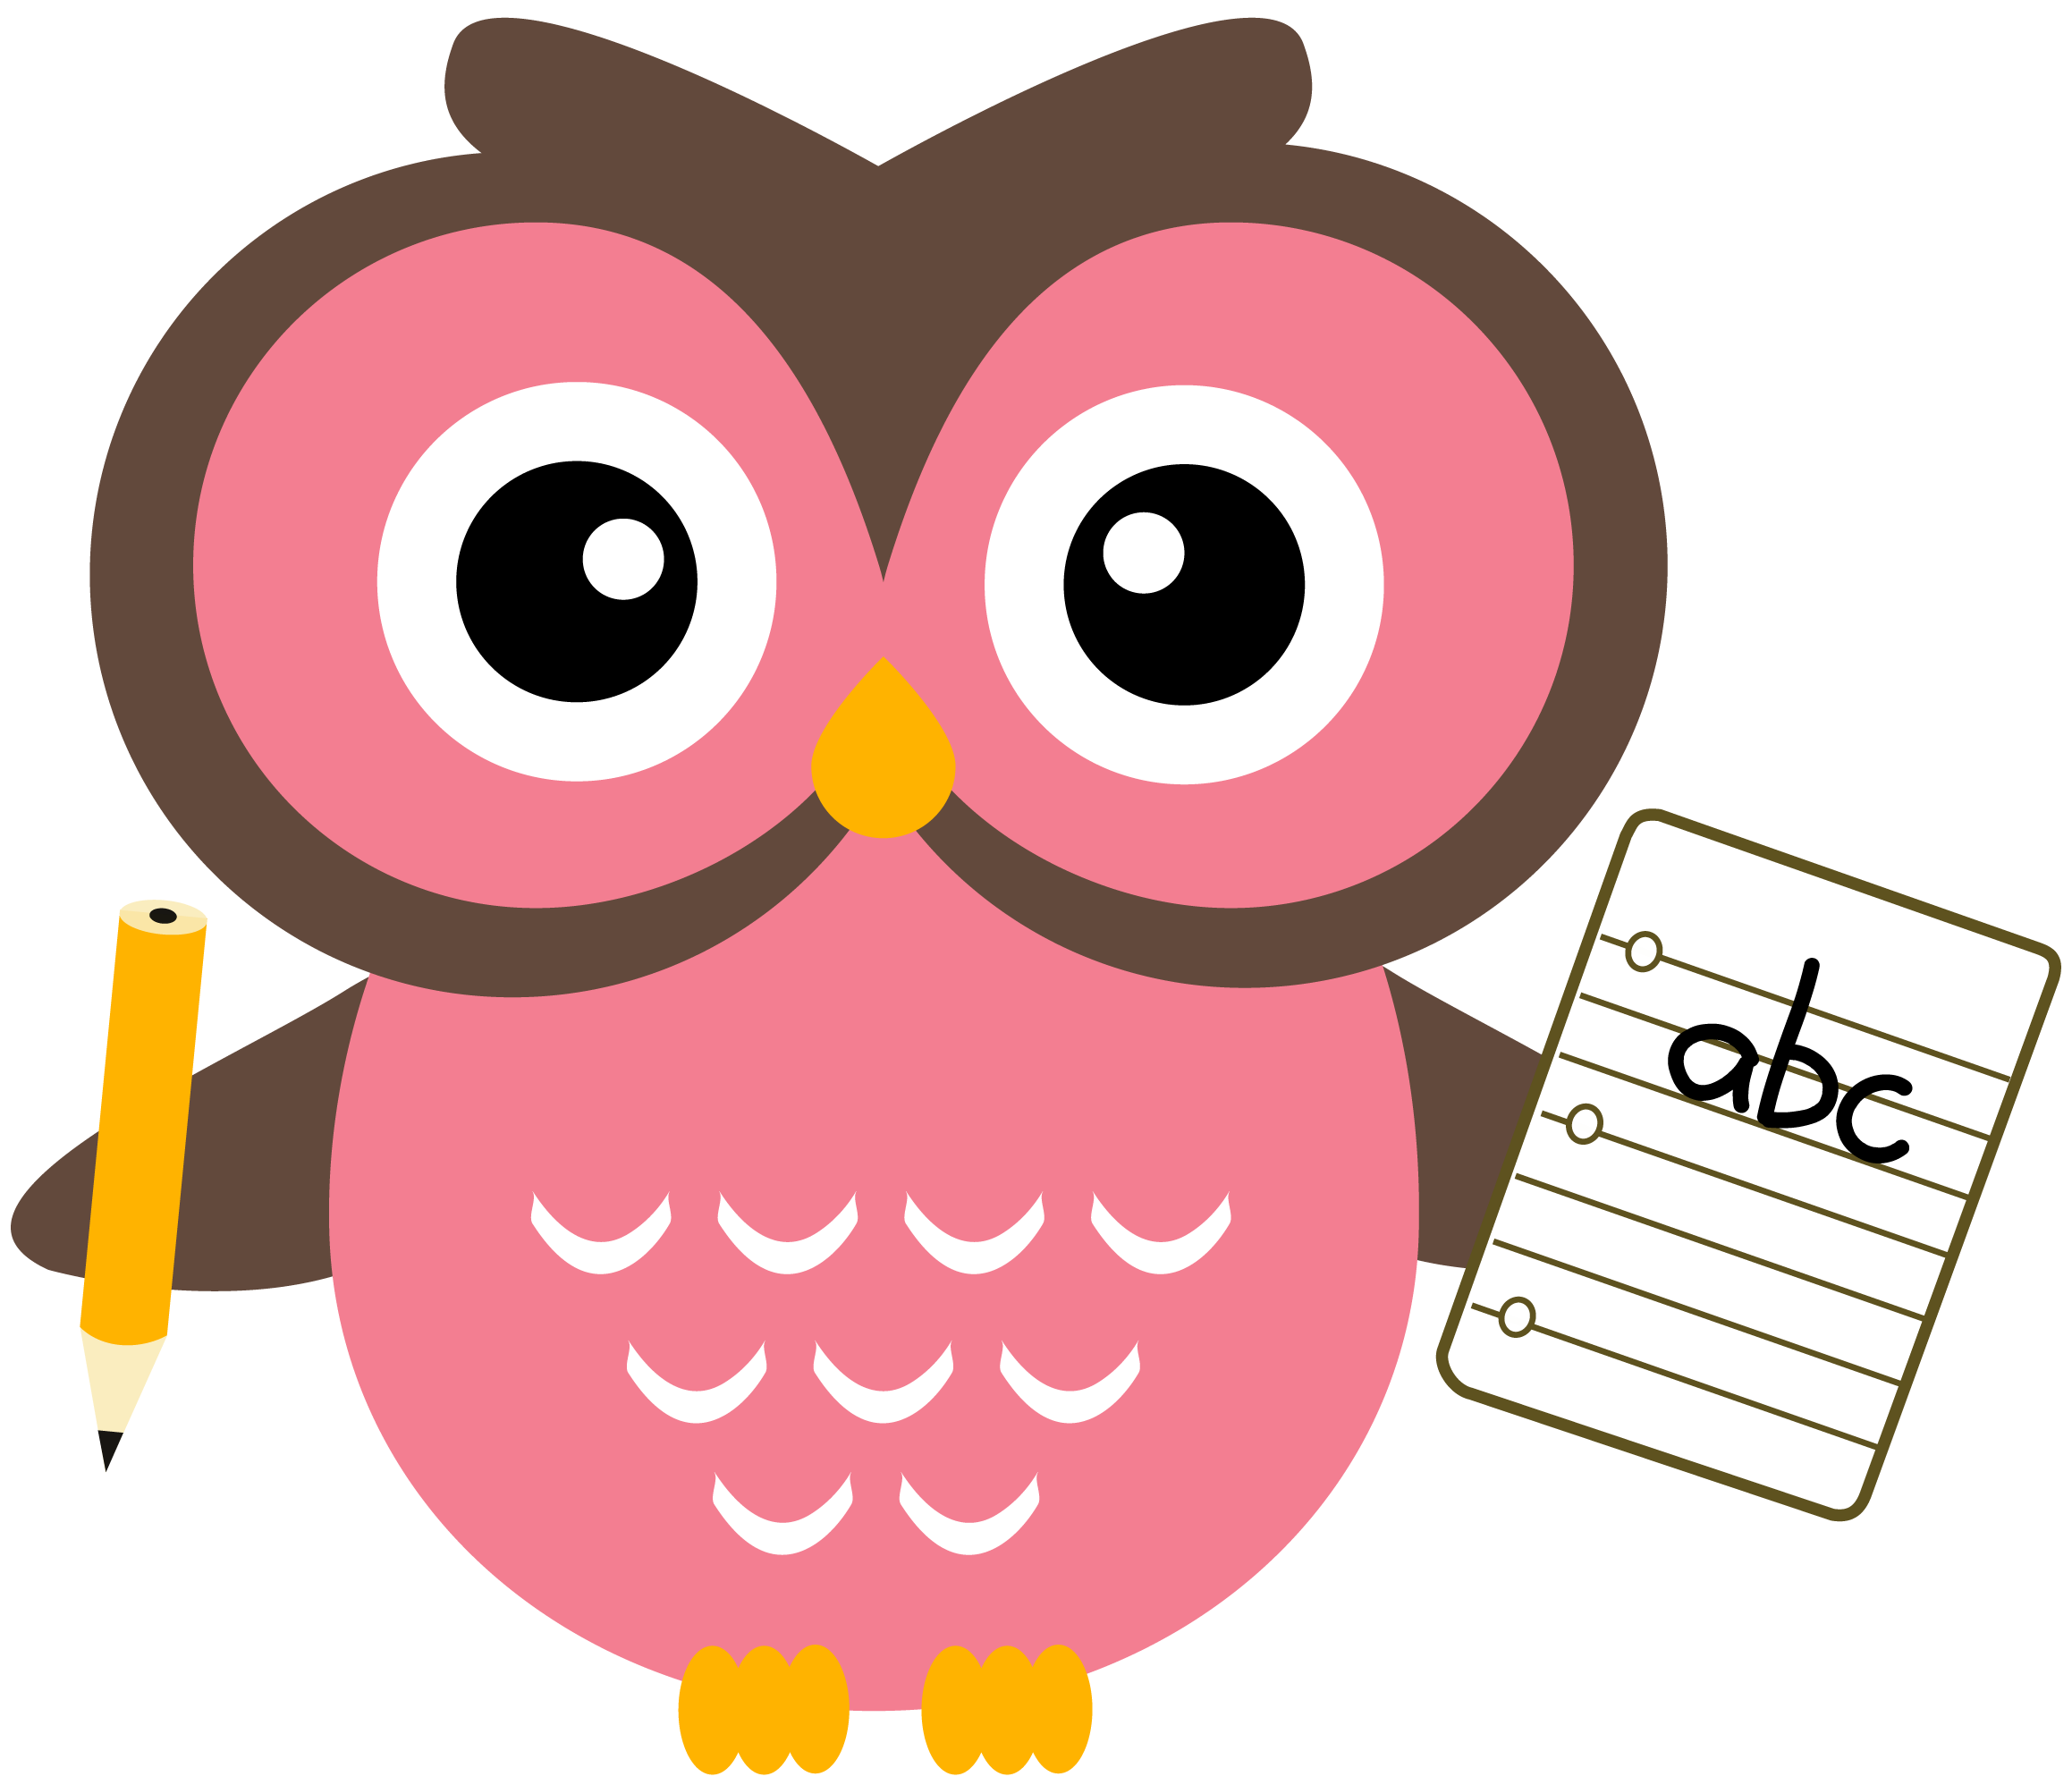 Group Of Homework Clipart Google Search -Group Of Homework Clipart Google Search We Heart It-3